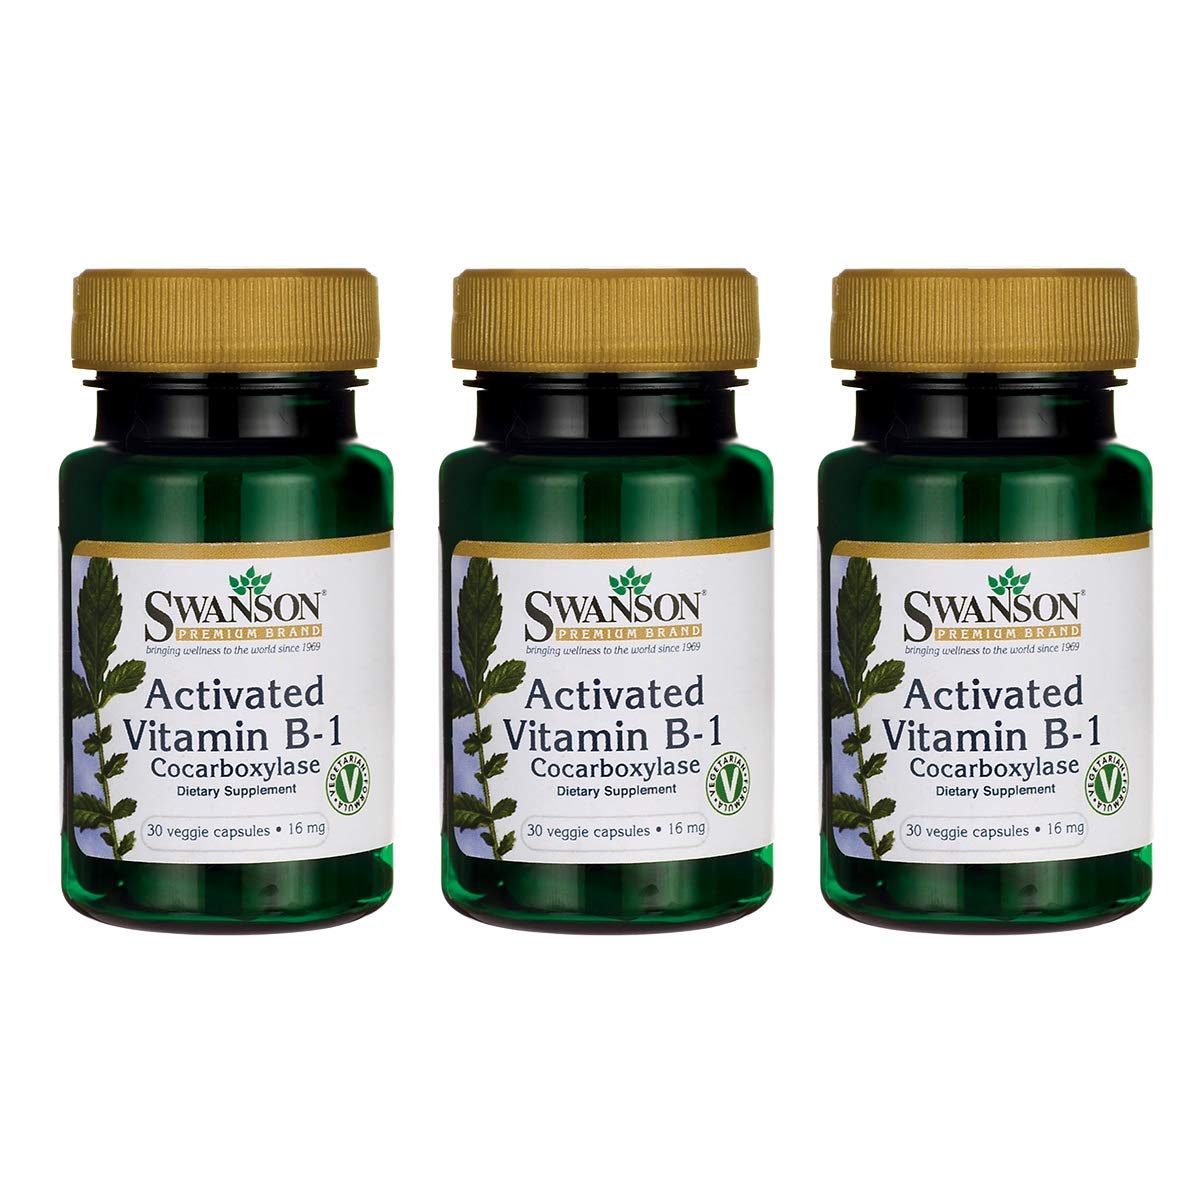 Swanson Activated Vitamin B-1 16 Milligrams 30 Veg Capsules (3 Pack) by Swanson